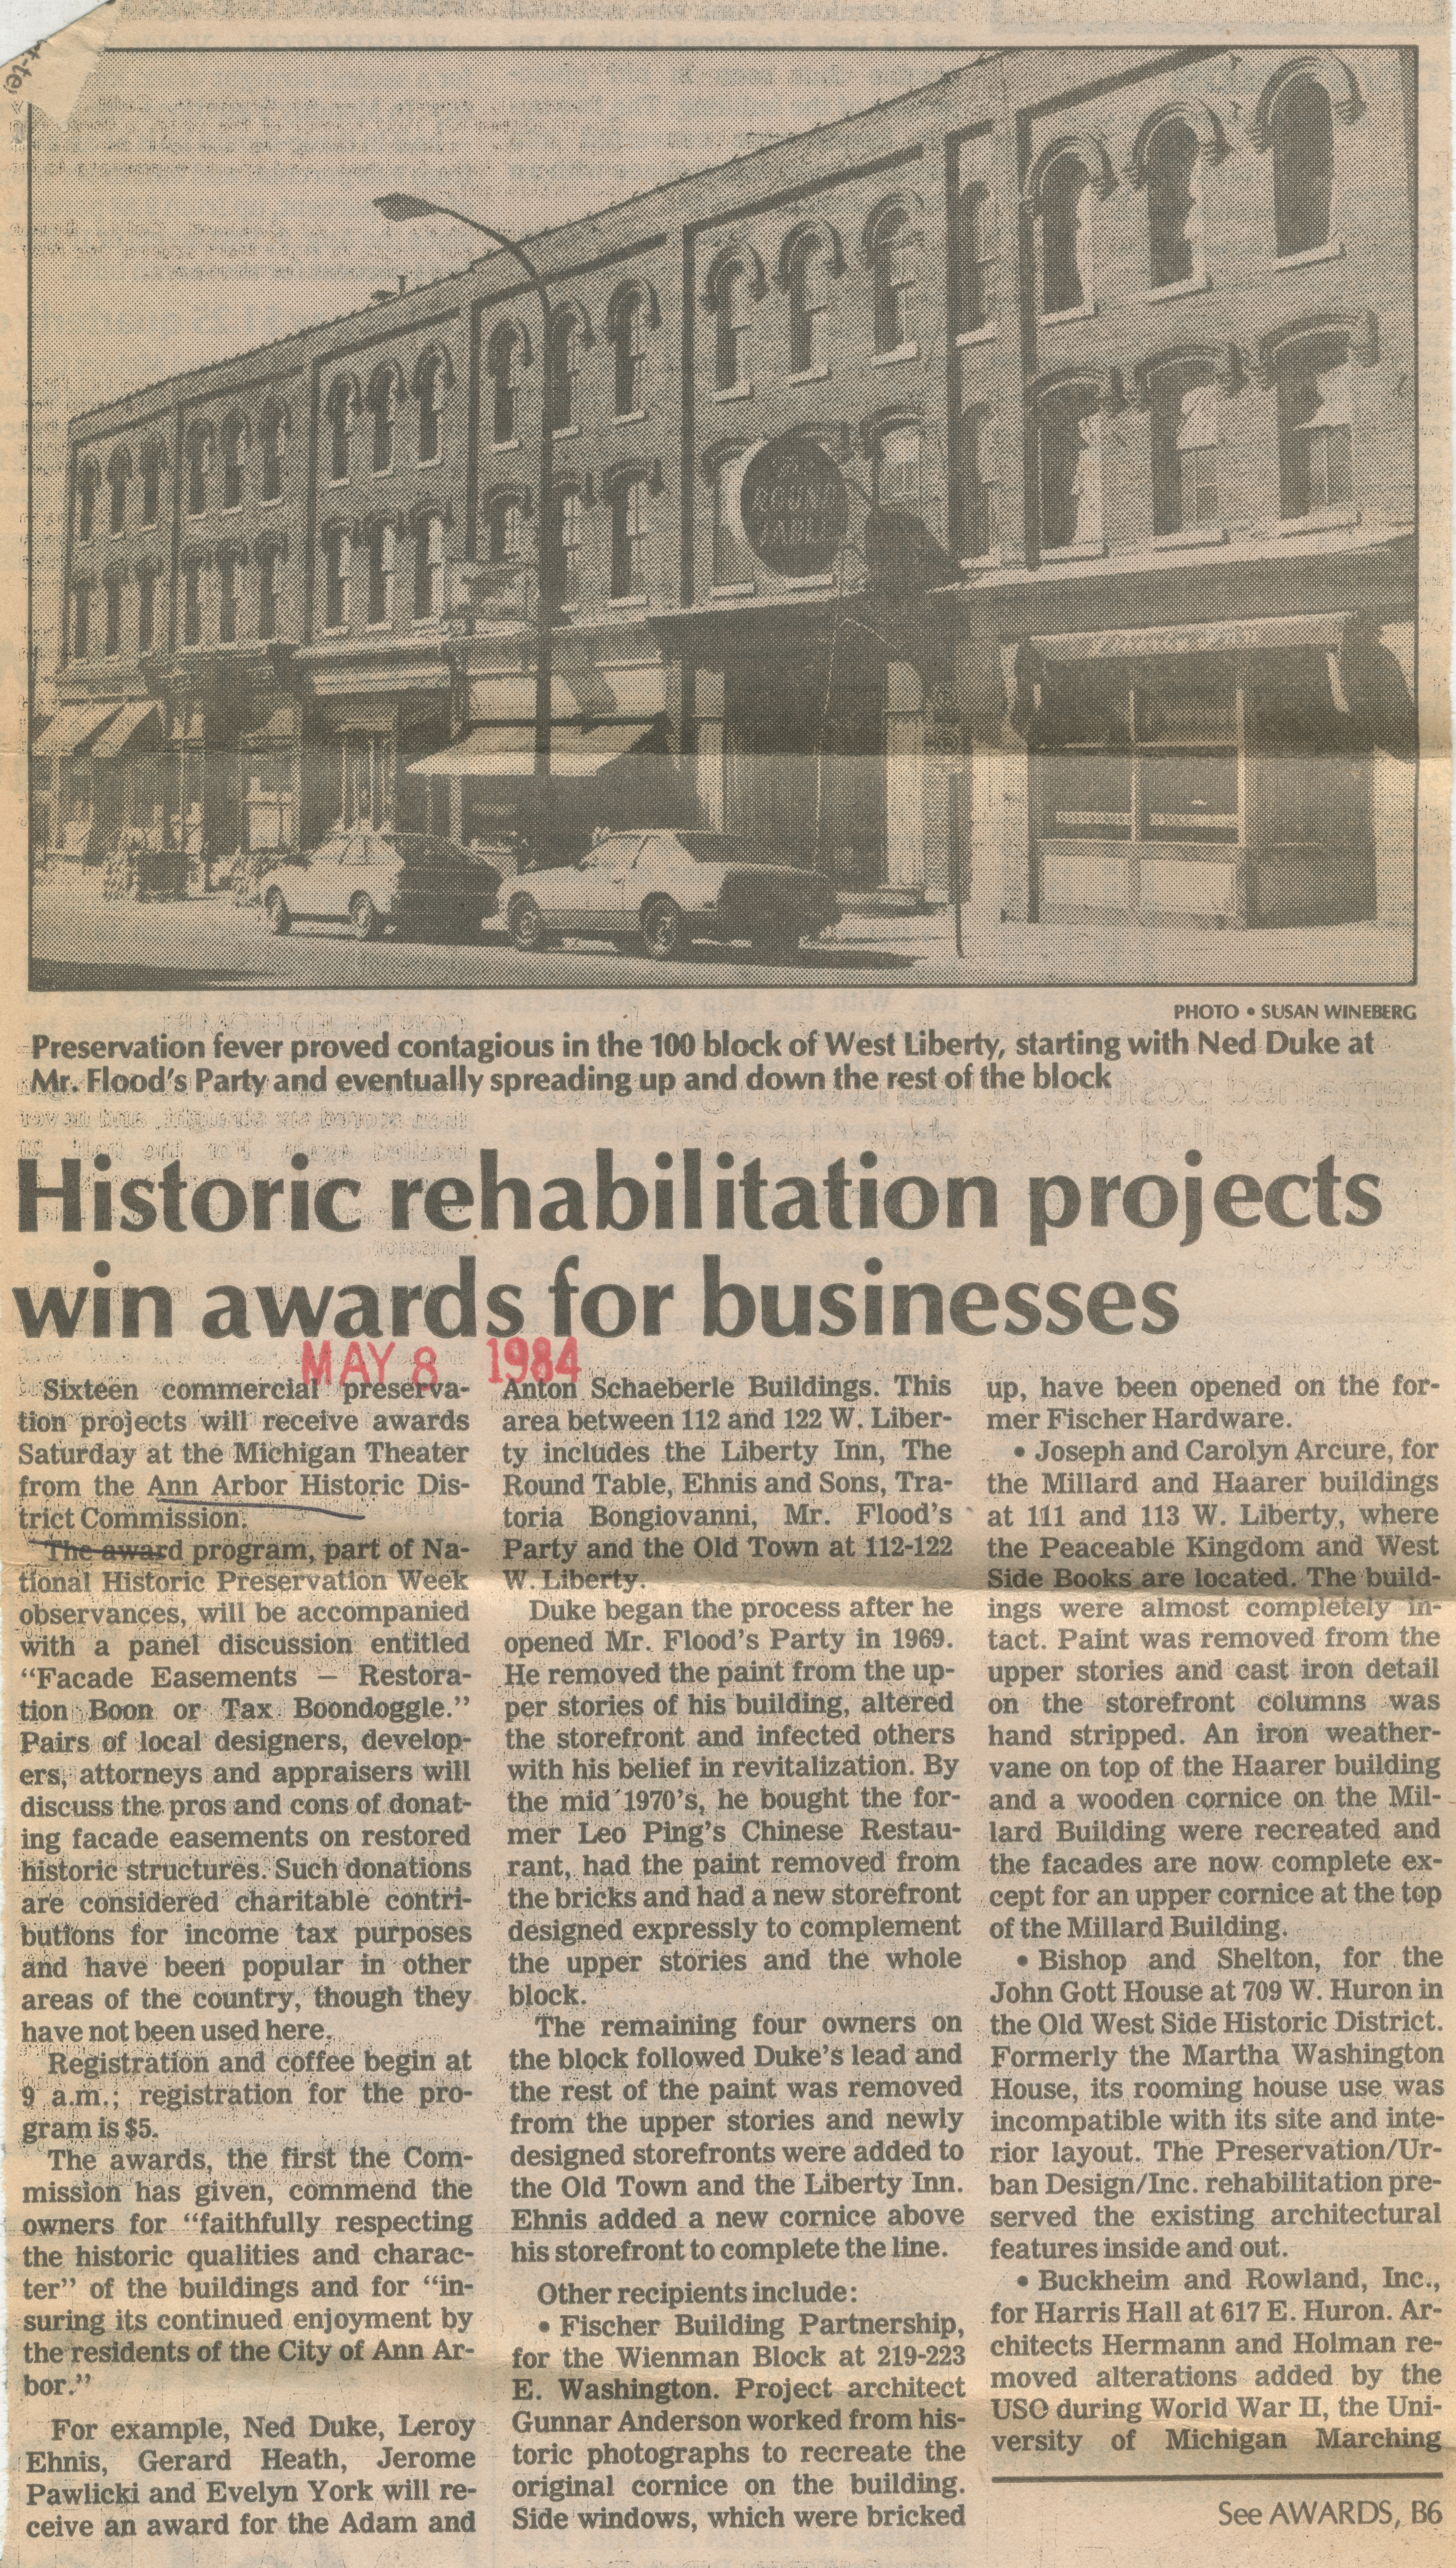 Historic rehabilitation projects win awards for businesses image